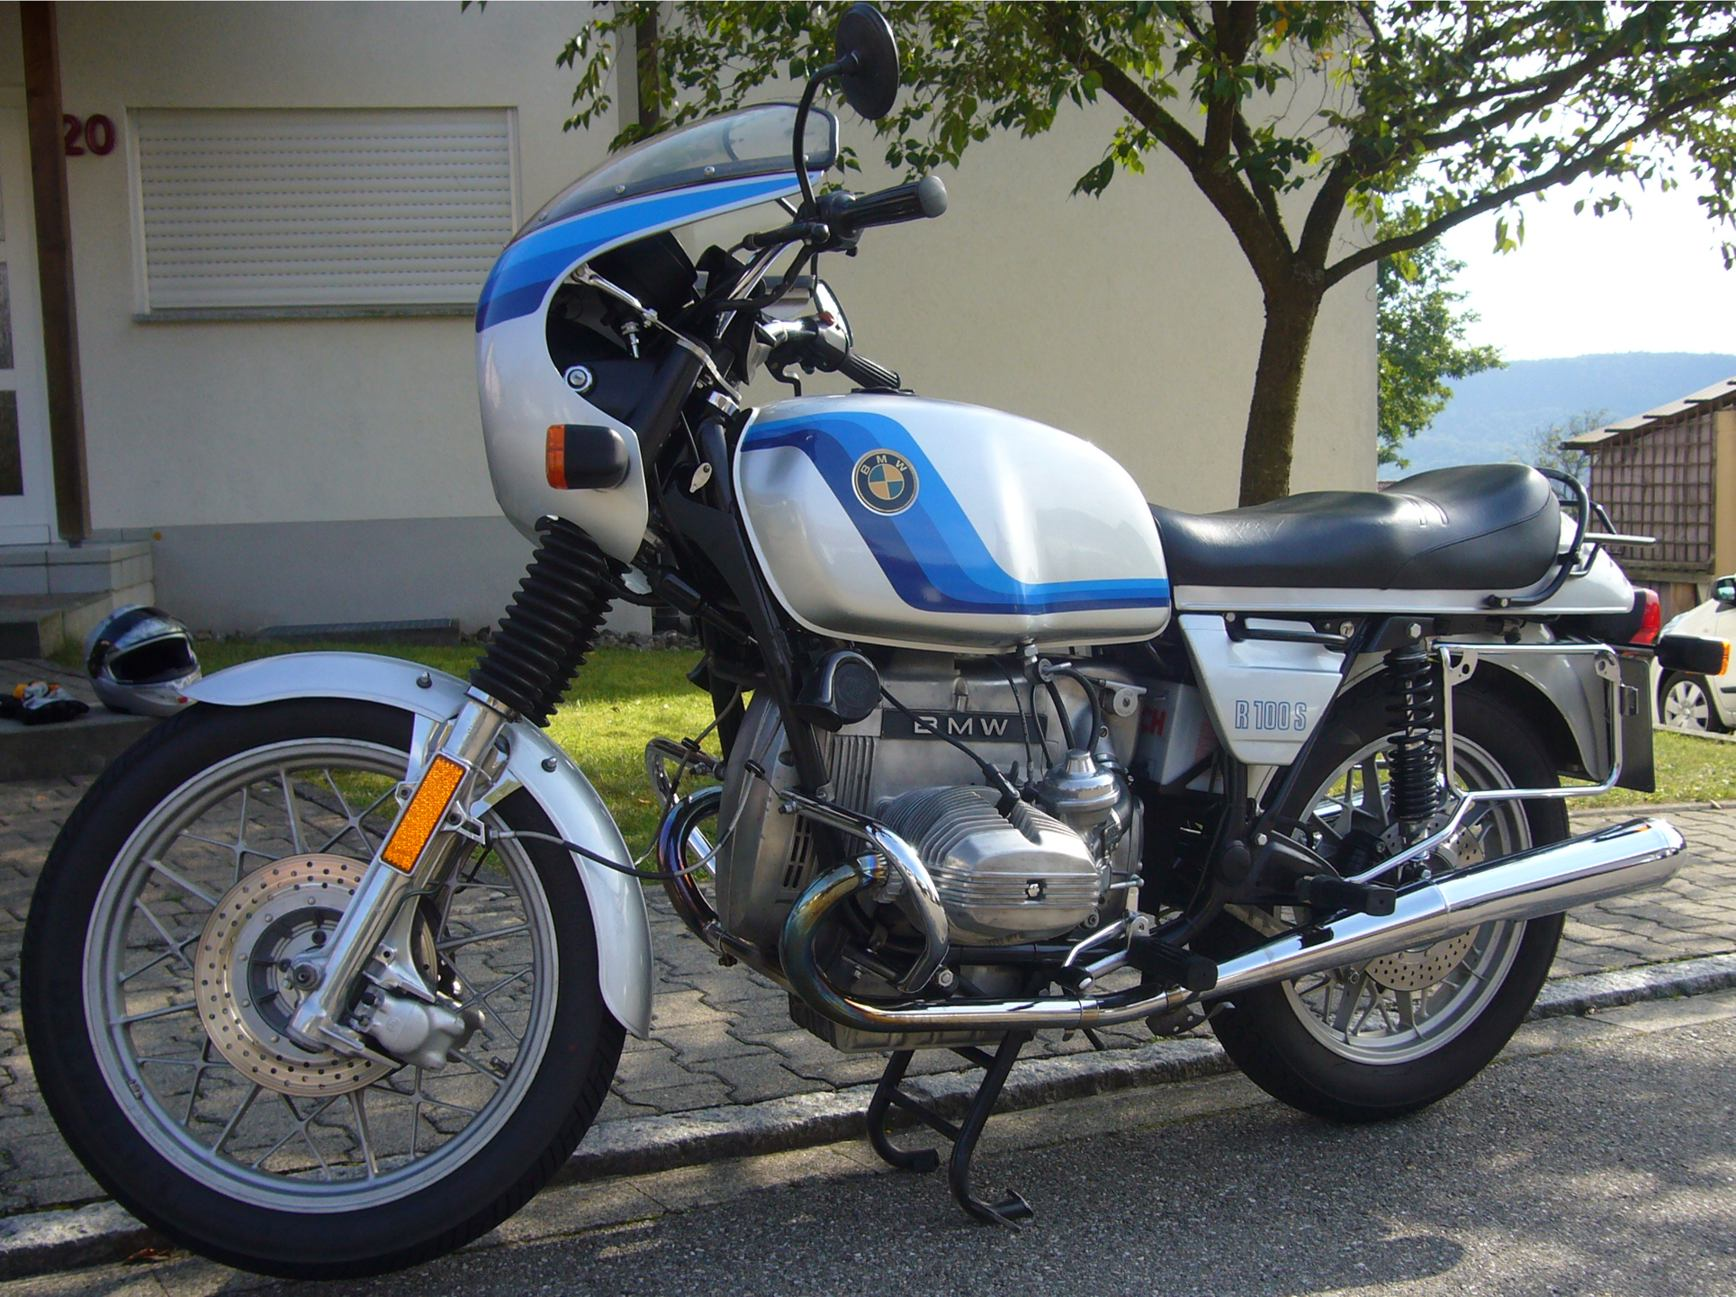 BMW R100CS images #12563